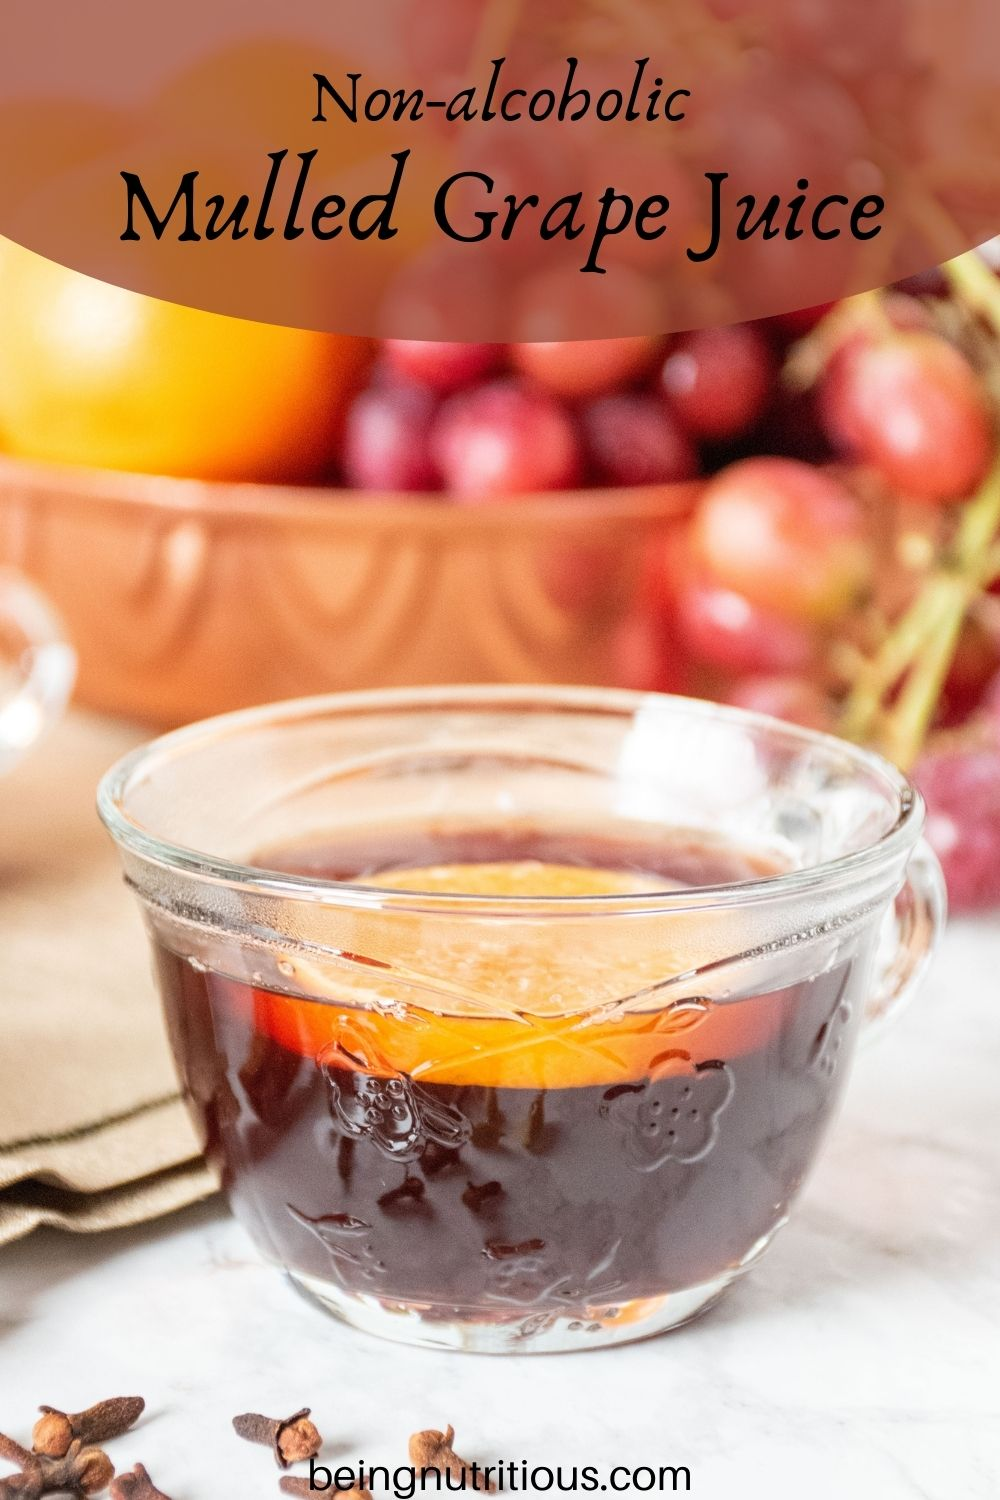 Close up of a small glass mug, filled with mulled grape juice, with an orange slice in it. Text overlay: non-alcoholic mulled grape juice.